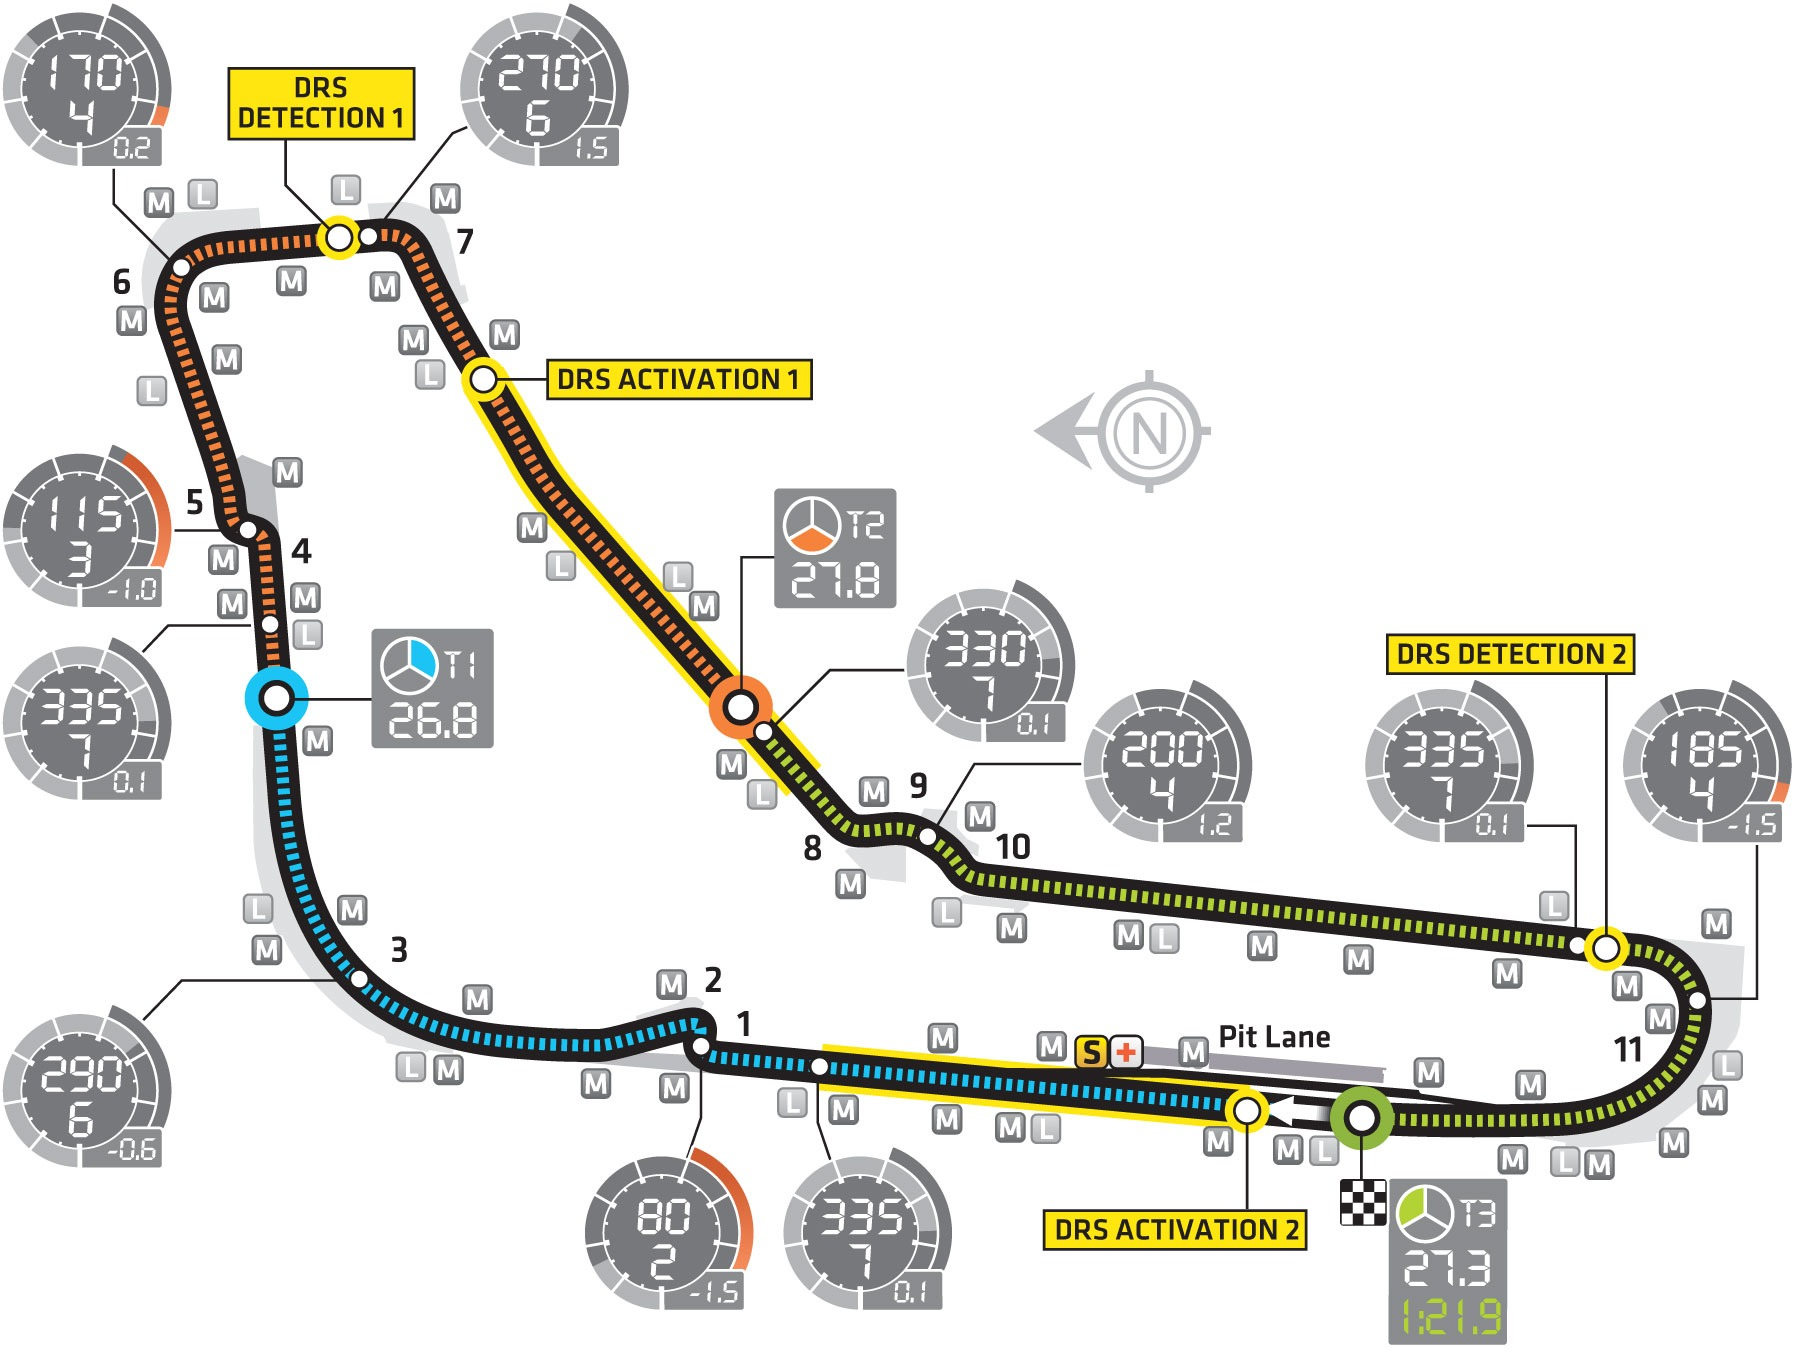 Autodromo Nazionale Monza circuit layout & records